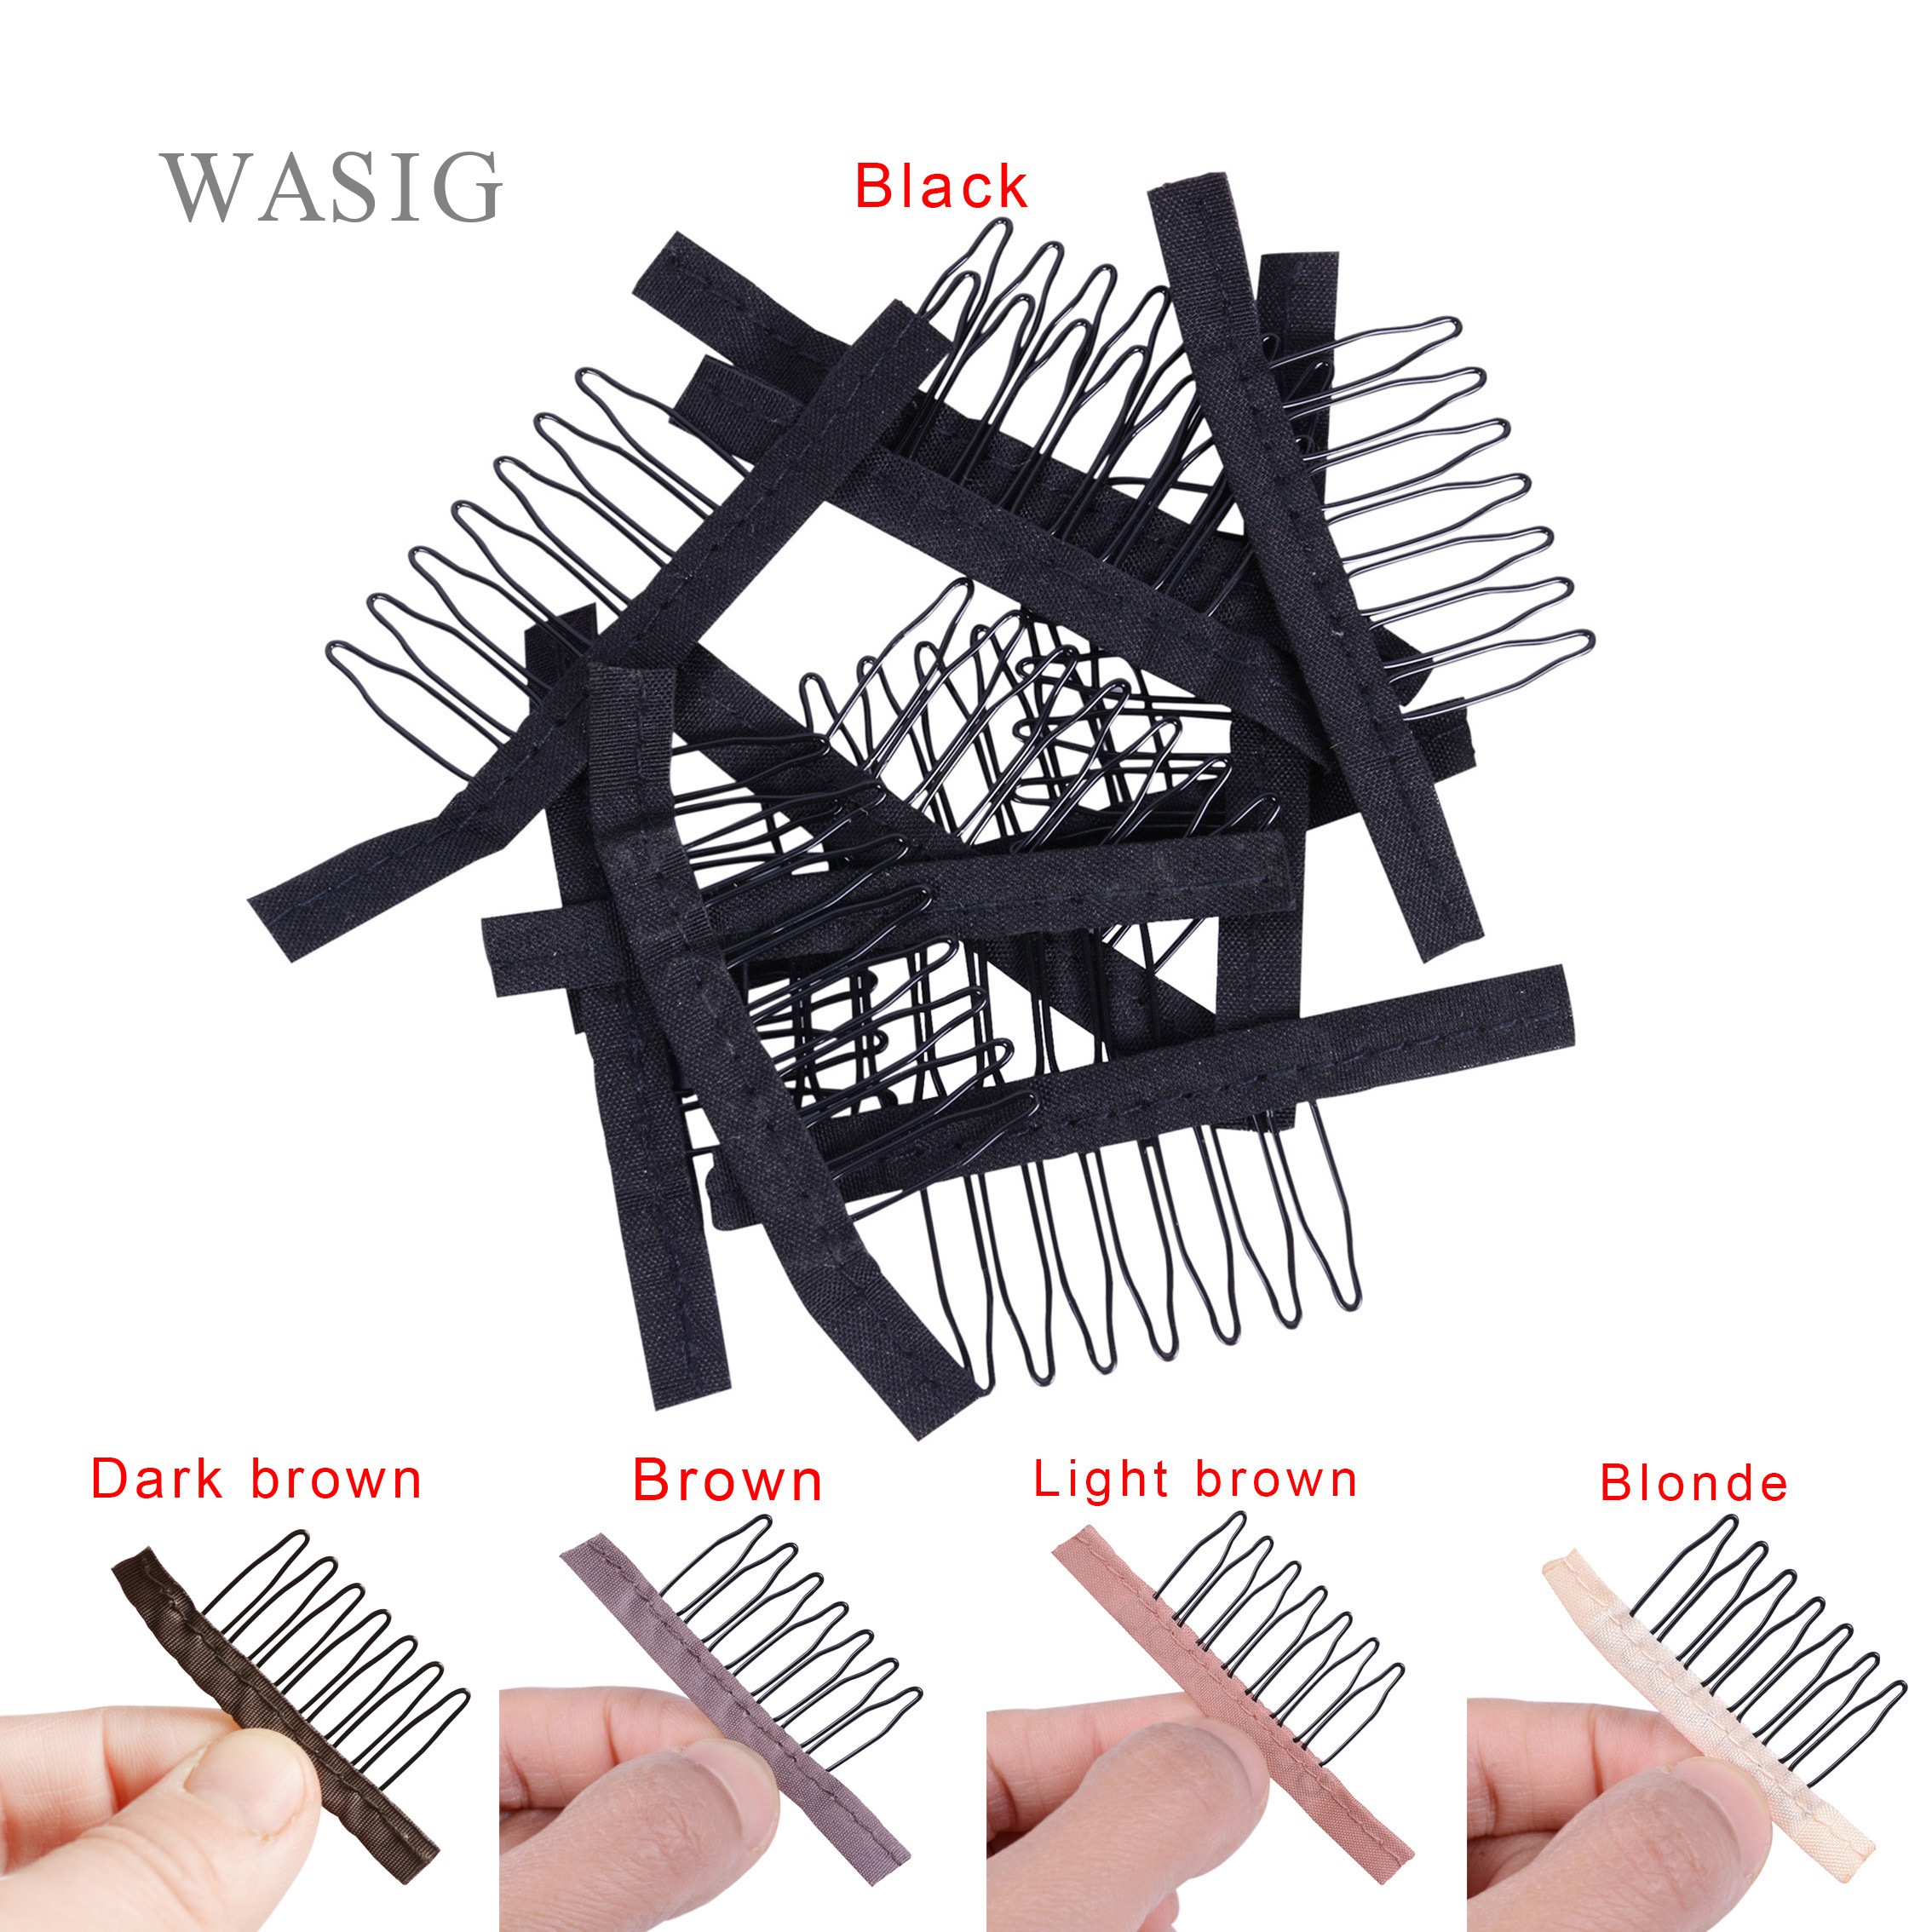 5 Colors Lace Wig Clips Steel 7 Tooth Polyester Durable Cloth Wig Combs For Hairpiece Caps Wig Accessories Tools 24 Pcs/lot